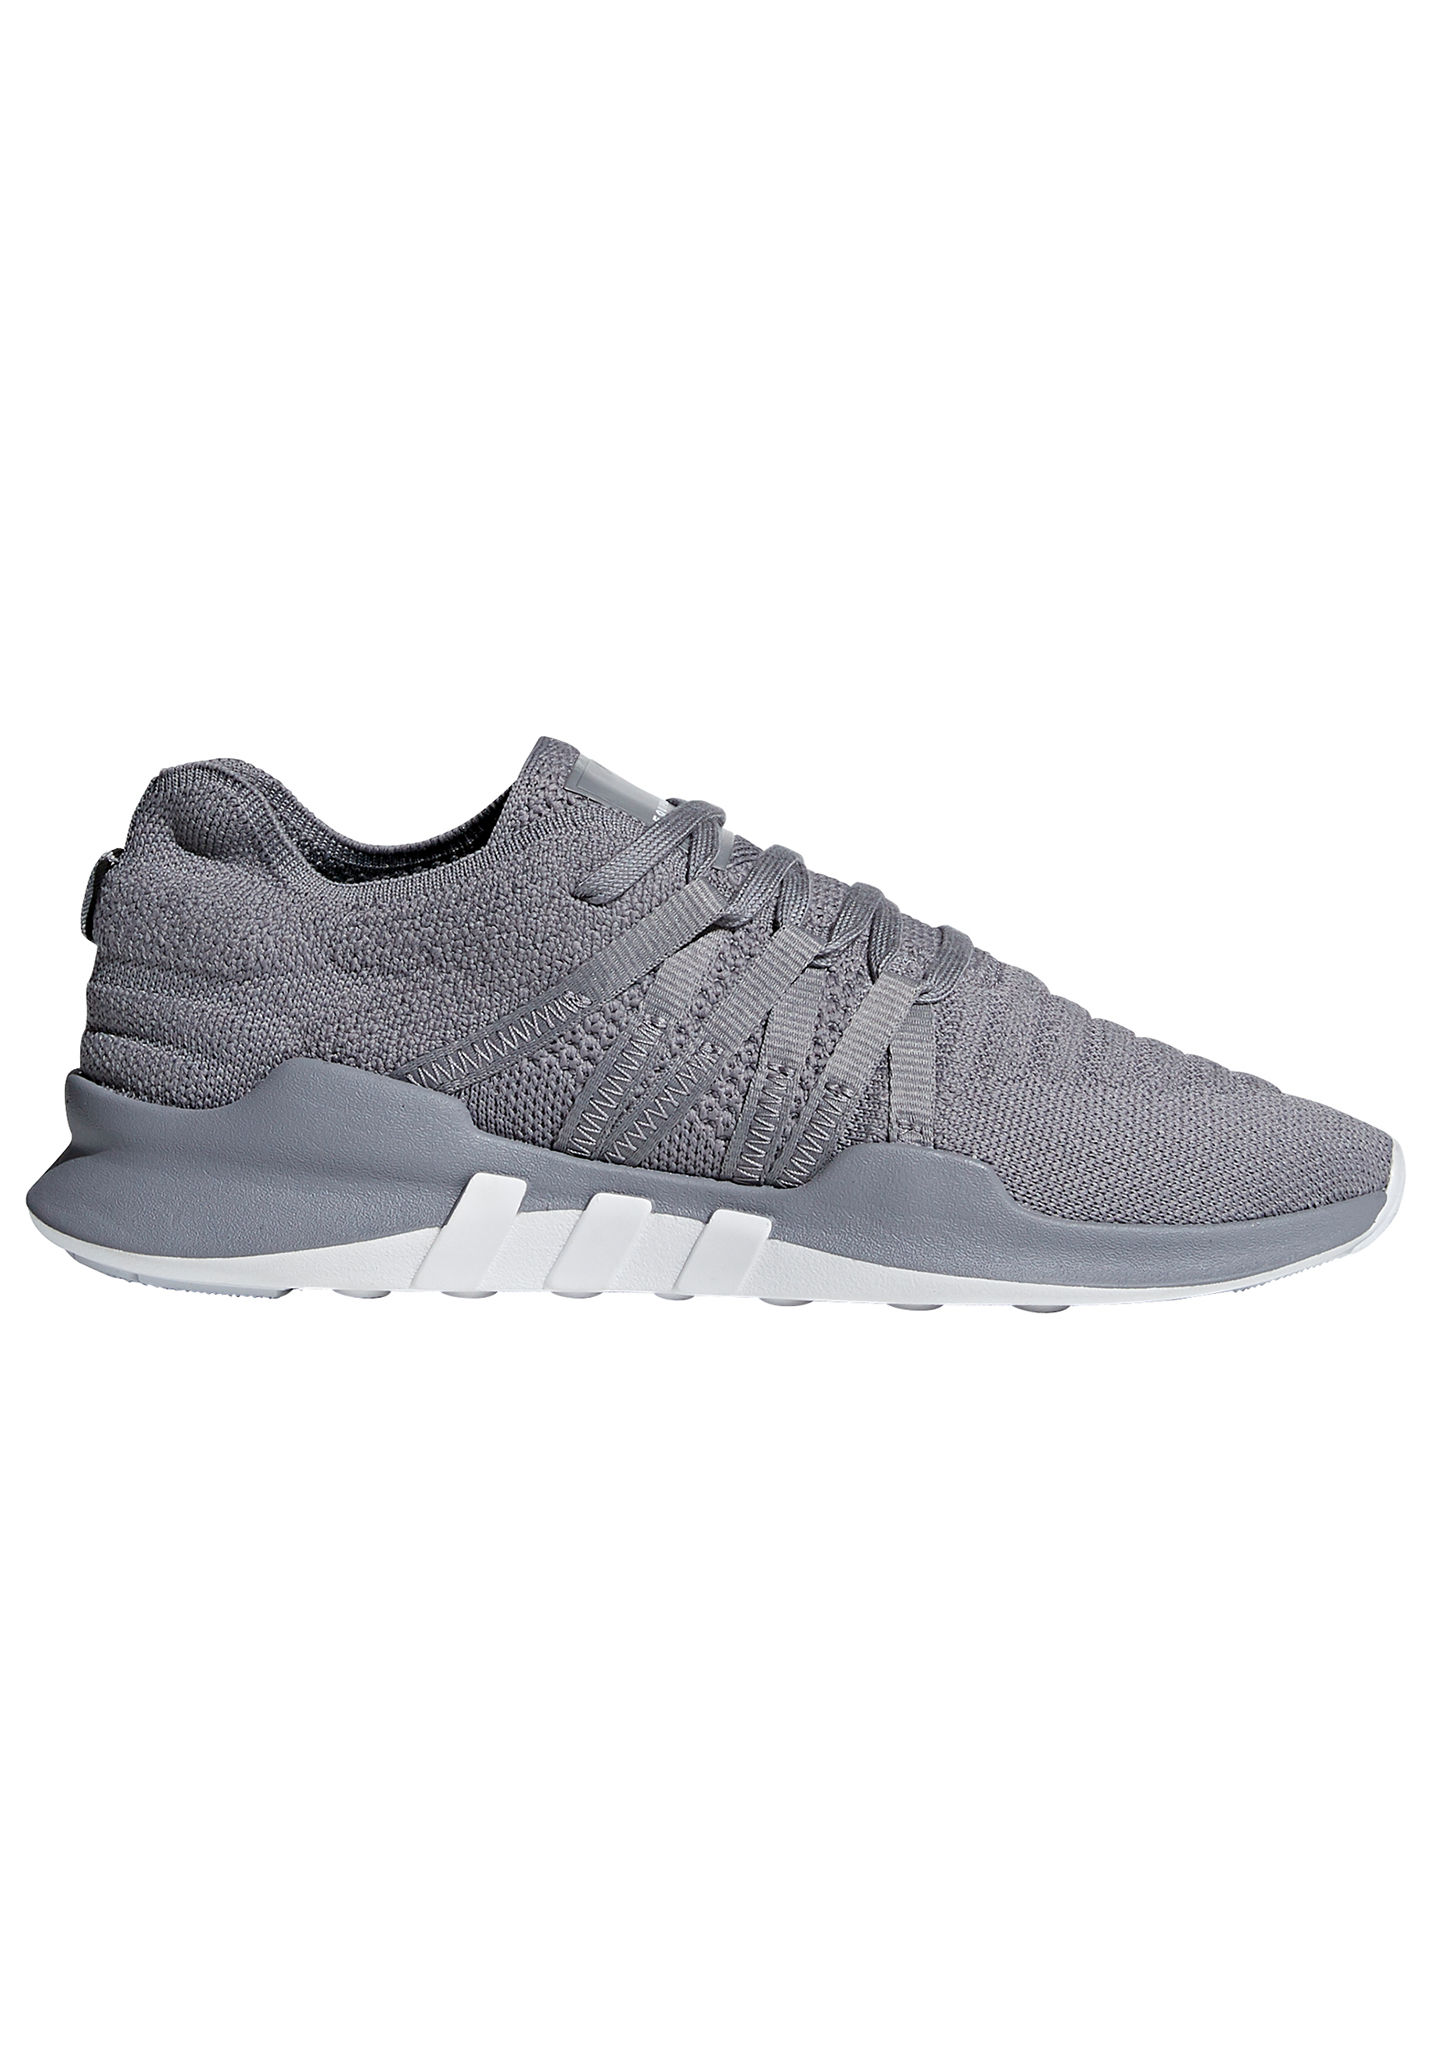 info for 36261 2fb69 ADIDAS ORIGINALS Eqt Racing Adv Pk - Sneakers for Women - Grey